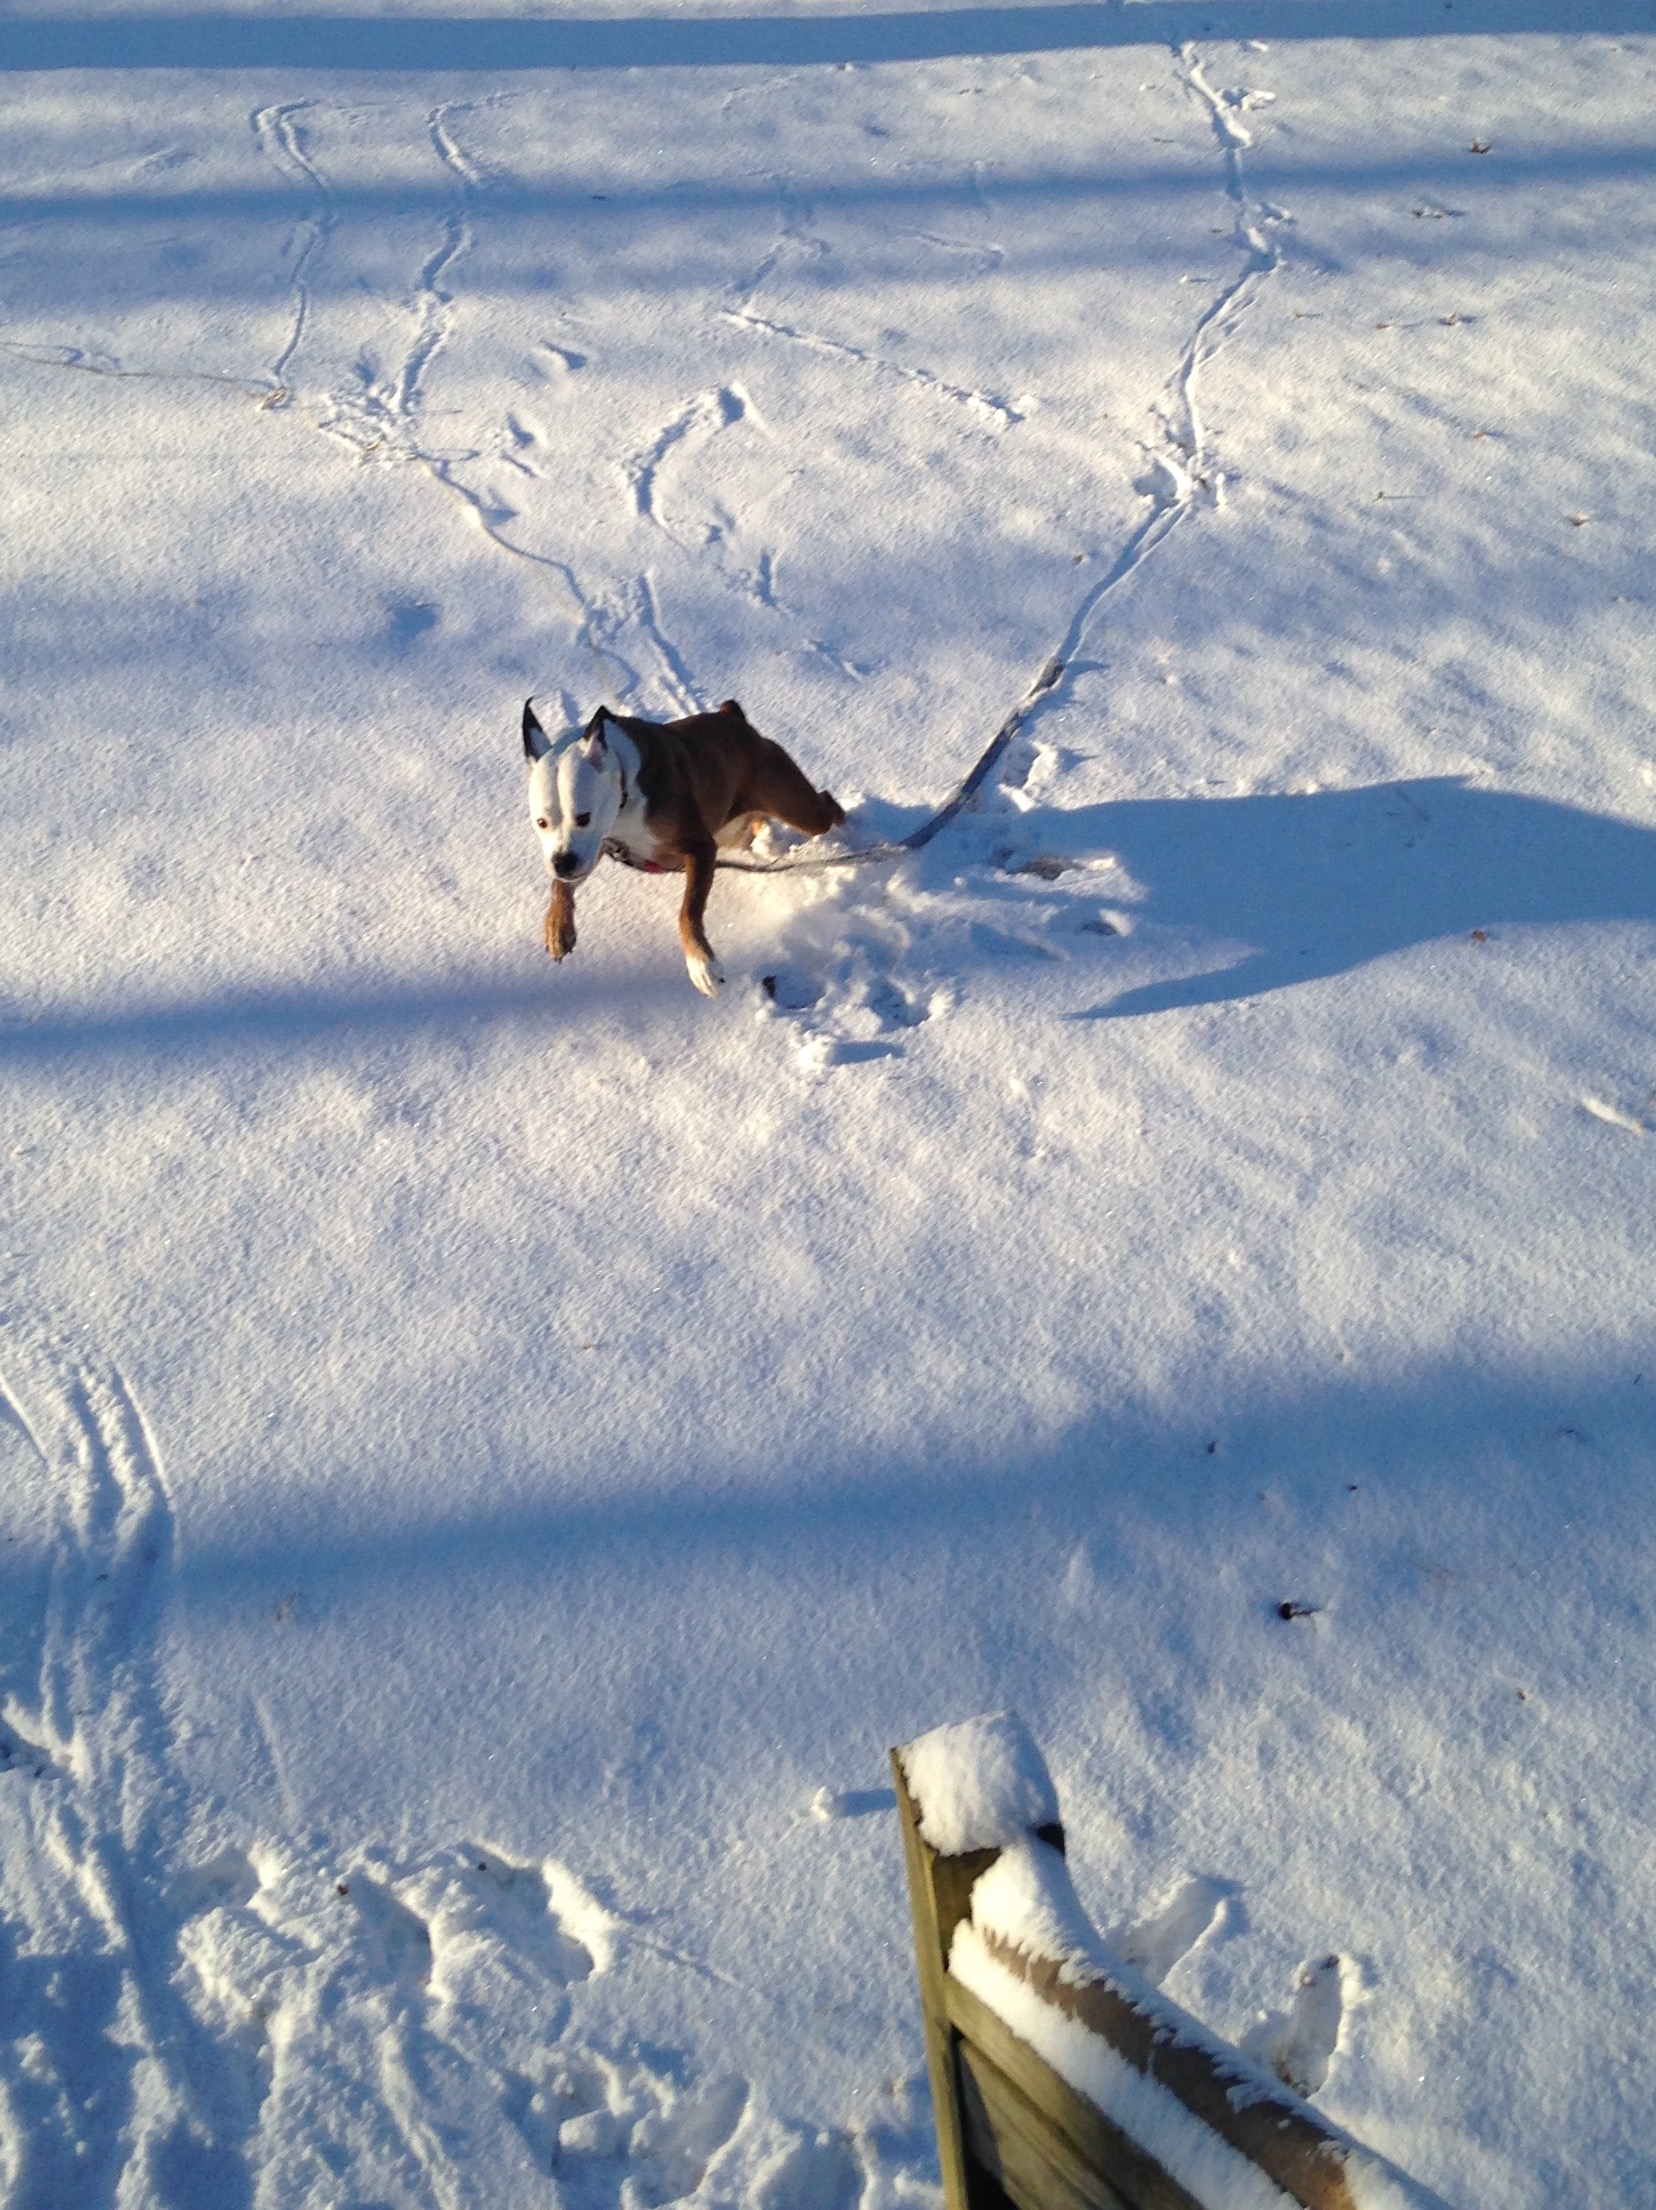 """<div class=""""meta image-caption""""><div class=""""origin-logo origin-image none""""><span>none</span></div><span class=""""caption-text"""">There's snow way this pup isn't having a good time (Credit: Crystal West)</span></div>"""